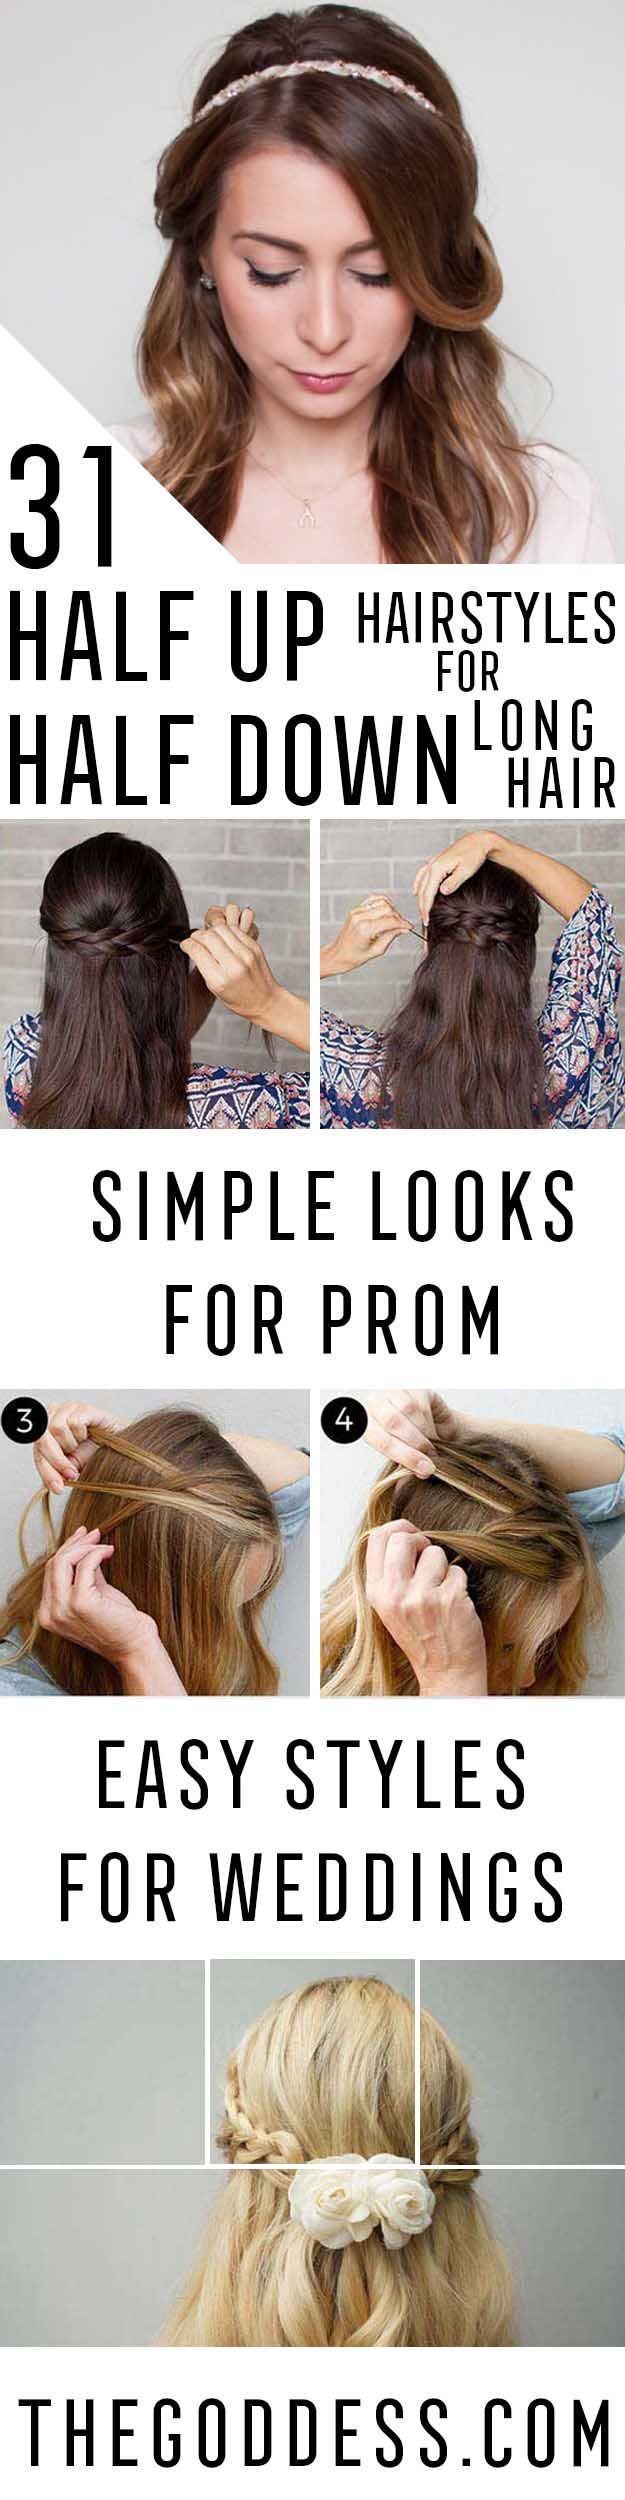 47 best Wedding Hairstyles images on Pinterest | Hair dos, Wedding ...